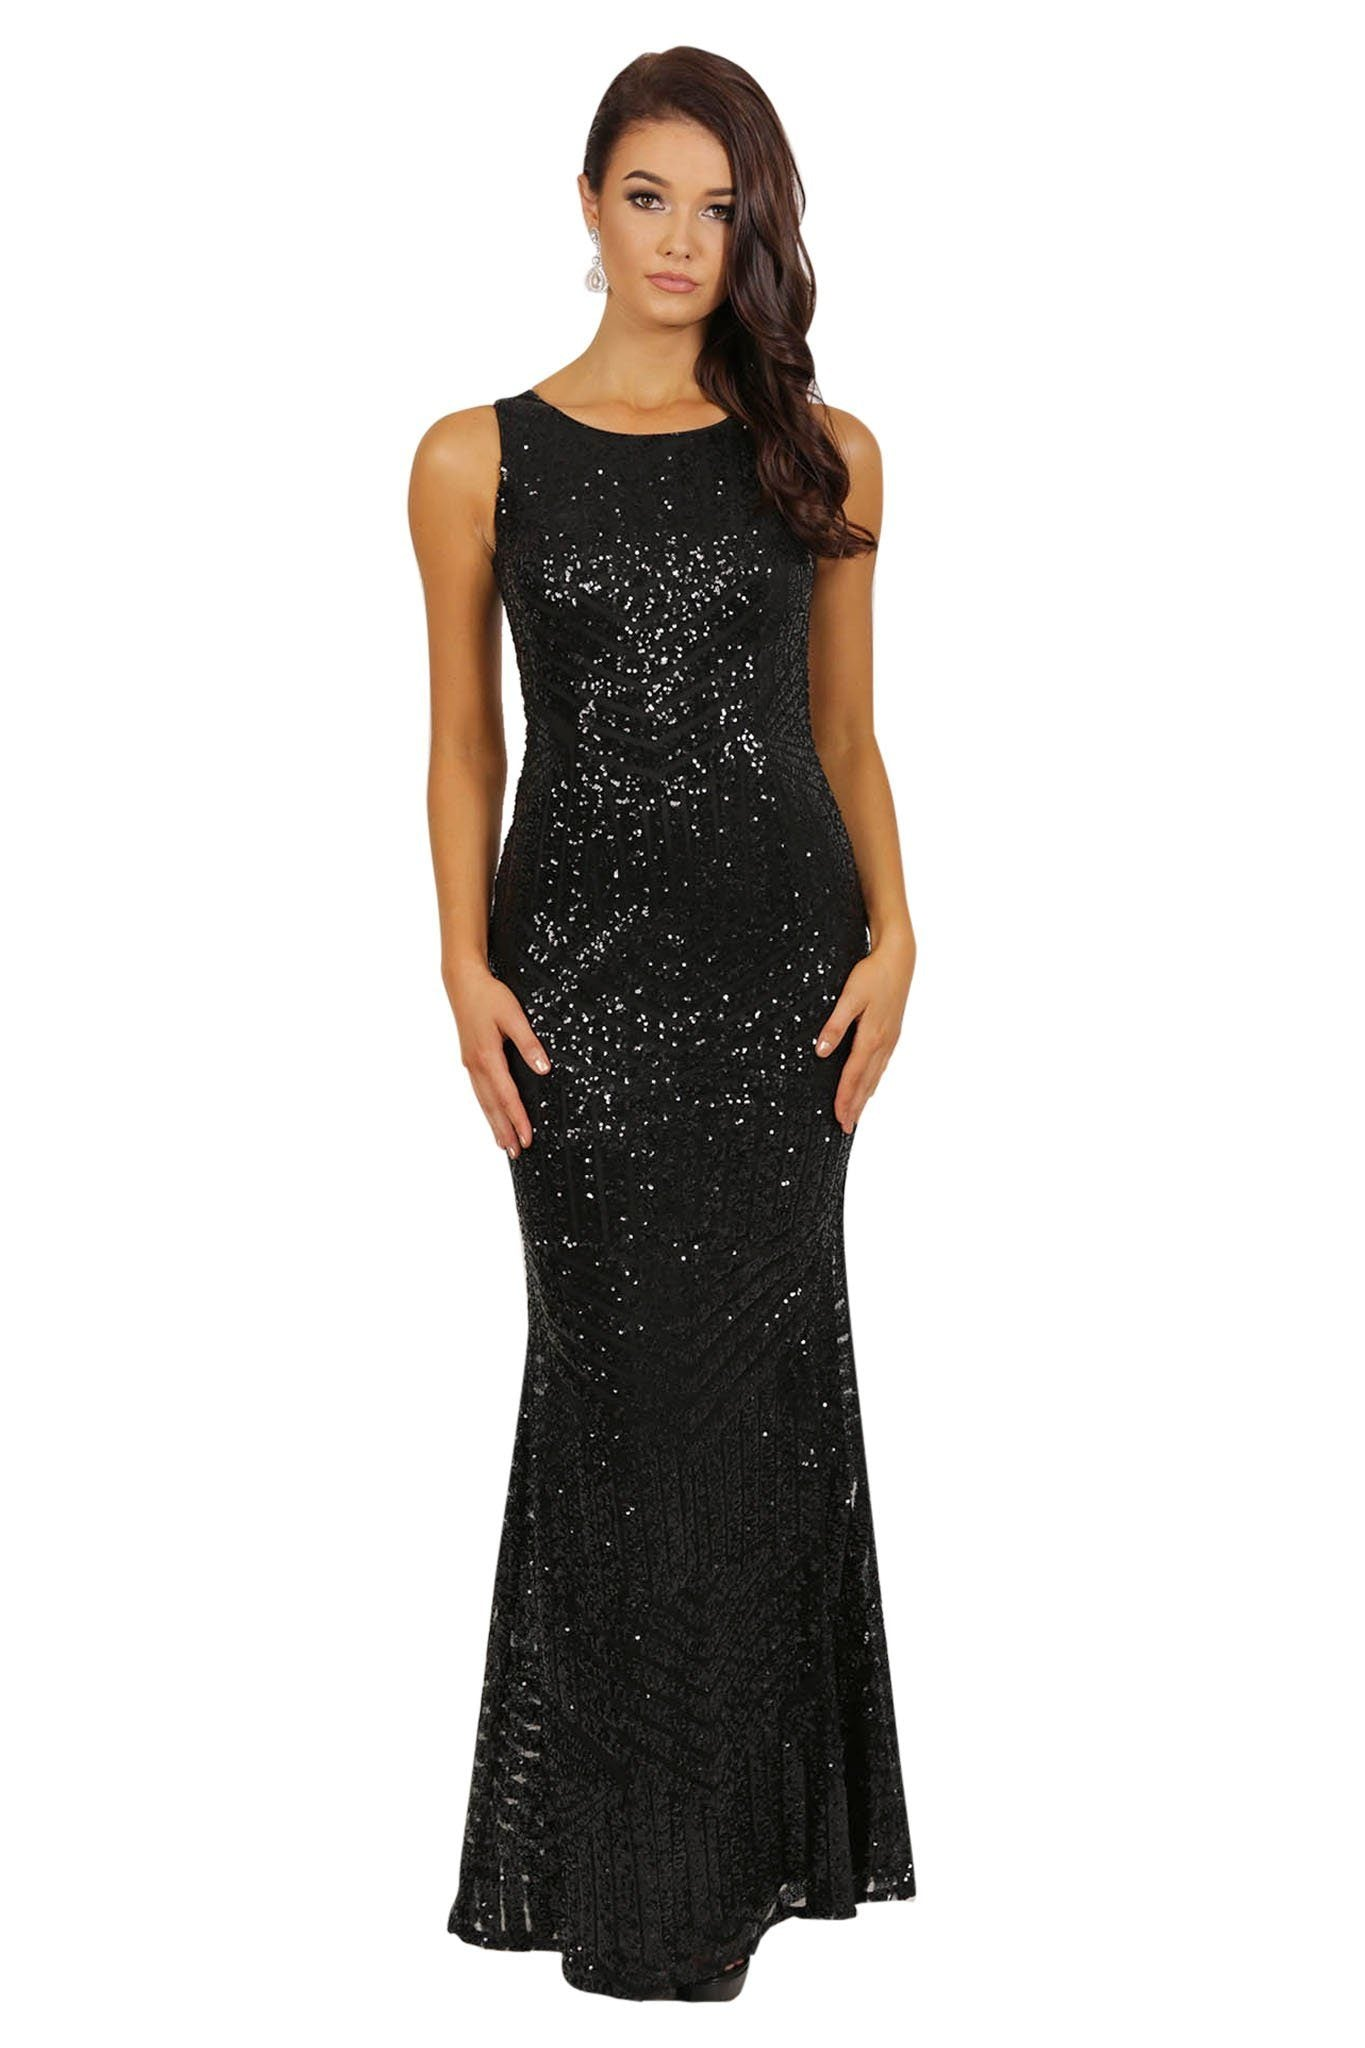 Black sequin sleeveless maxi fitted dress scoop neckline hollow back cutout design